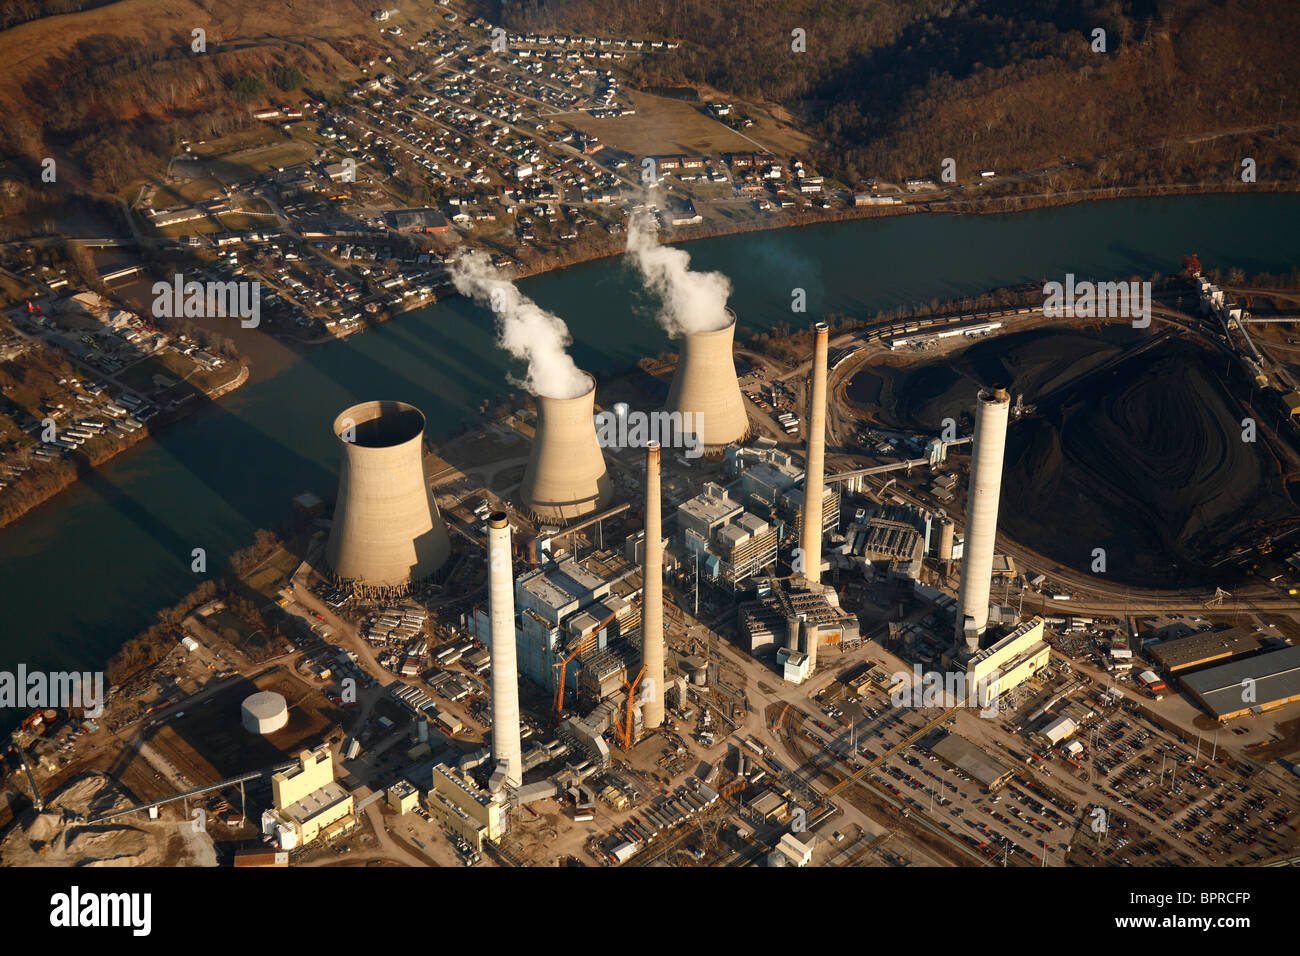 Aerial view of a coal-fired power plant. - Stock Image